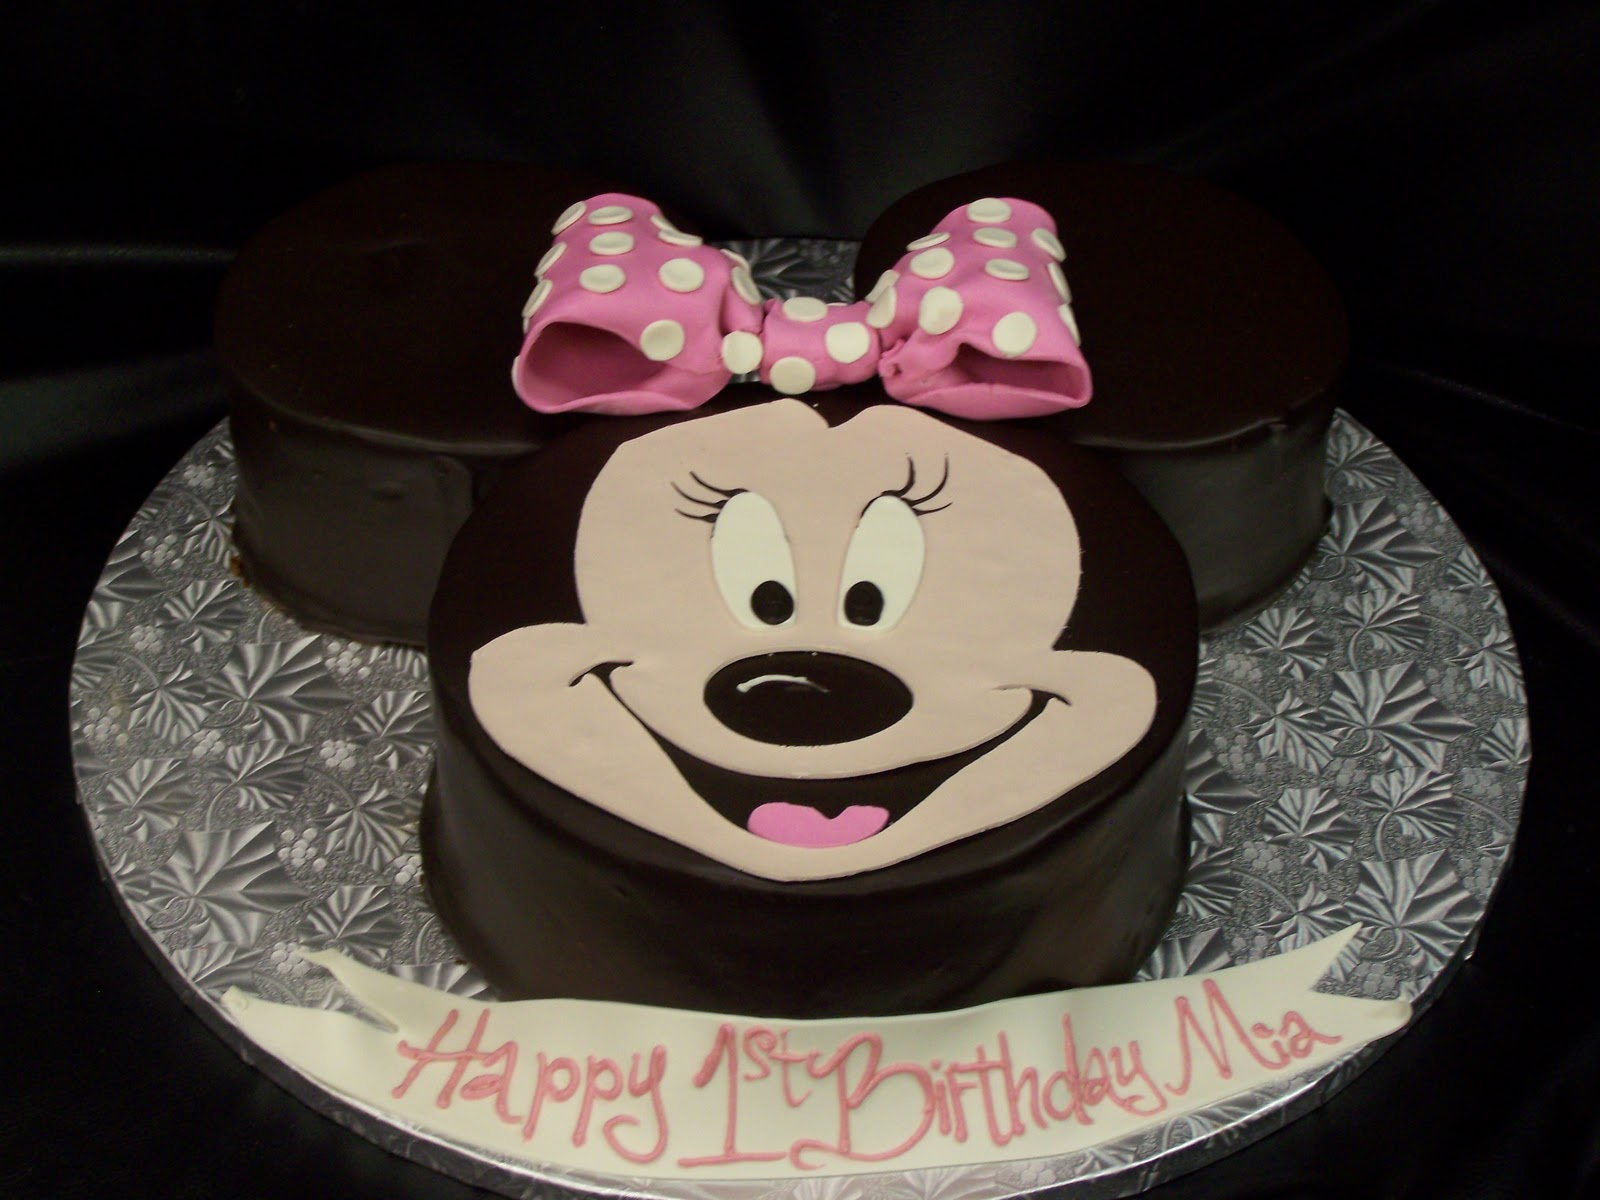 Phenomenal Minnie Mouse Cakes Decoration Ideas Little Birthday Cakes Personalised Birthday Cards Petedlily Jamesorg